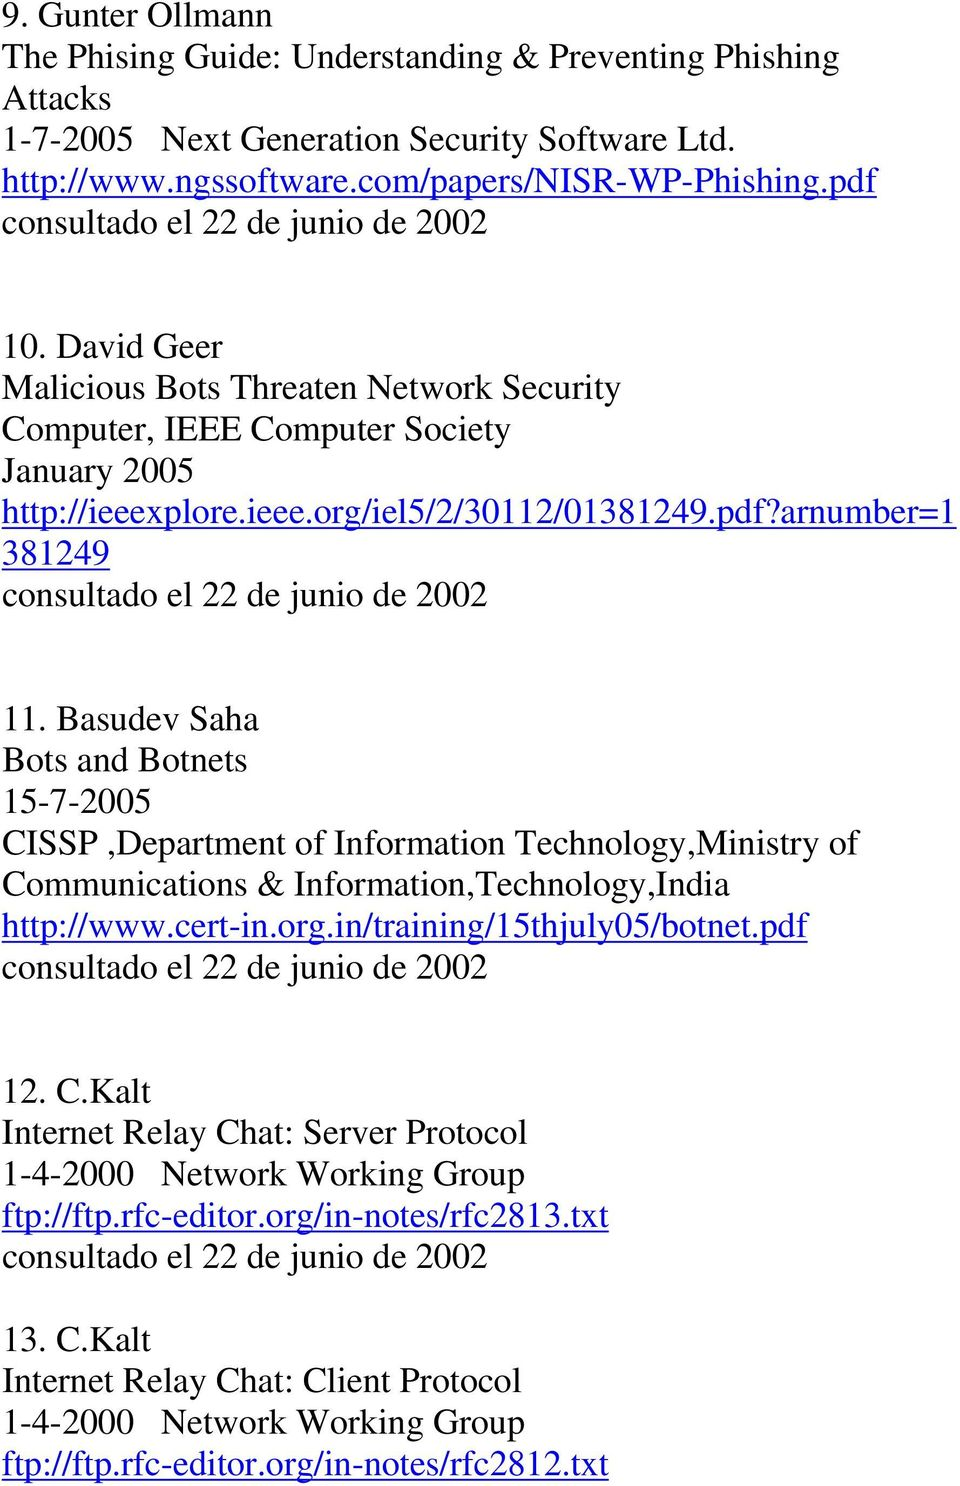 Basudev Saha Bots and Botnets 15-7-2005 CISSP,Department of Information Technology,Ministry of Communications & Information,Technology,India http://www.cert-in.org.in/training/15thjuly05/botnet.